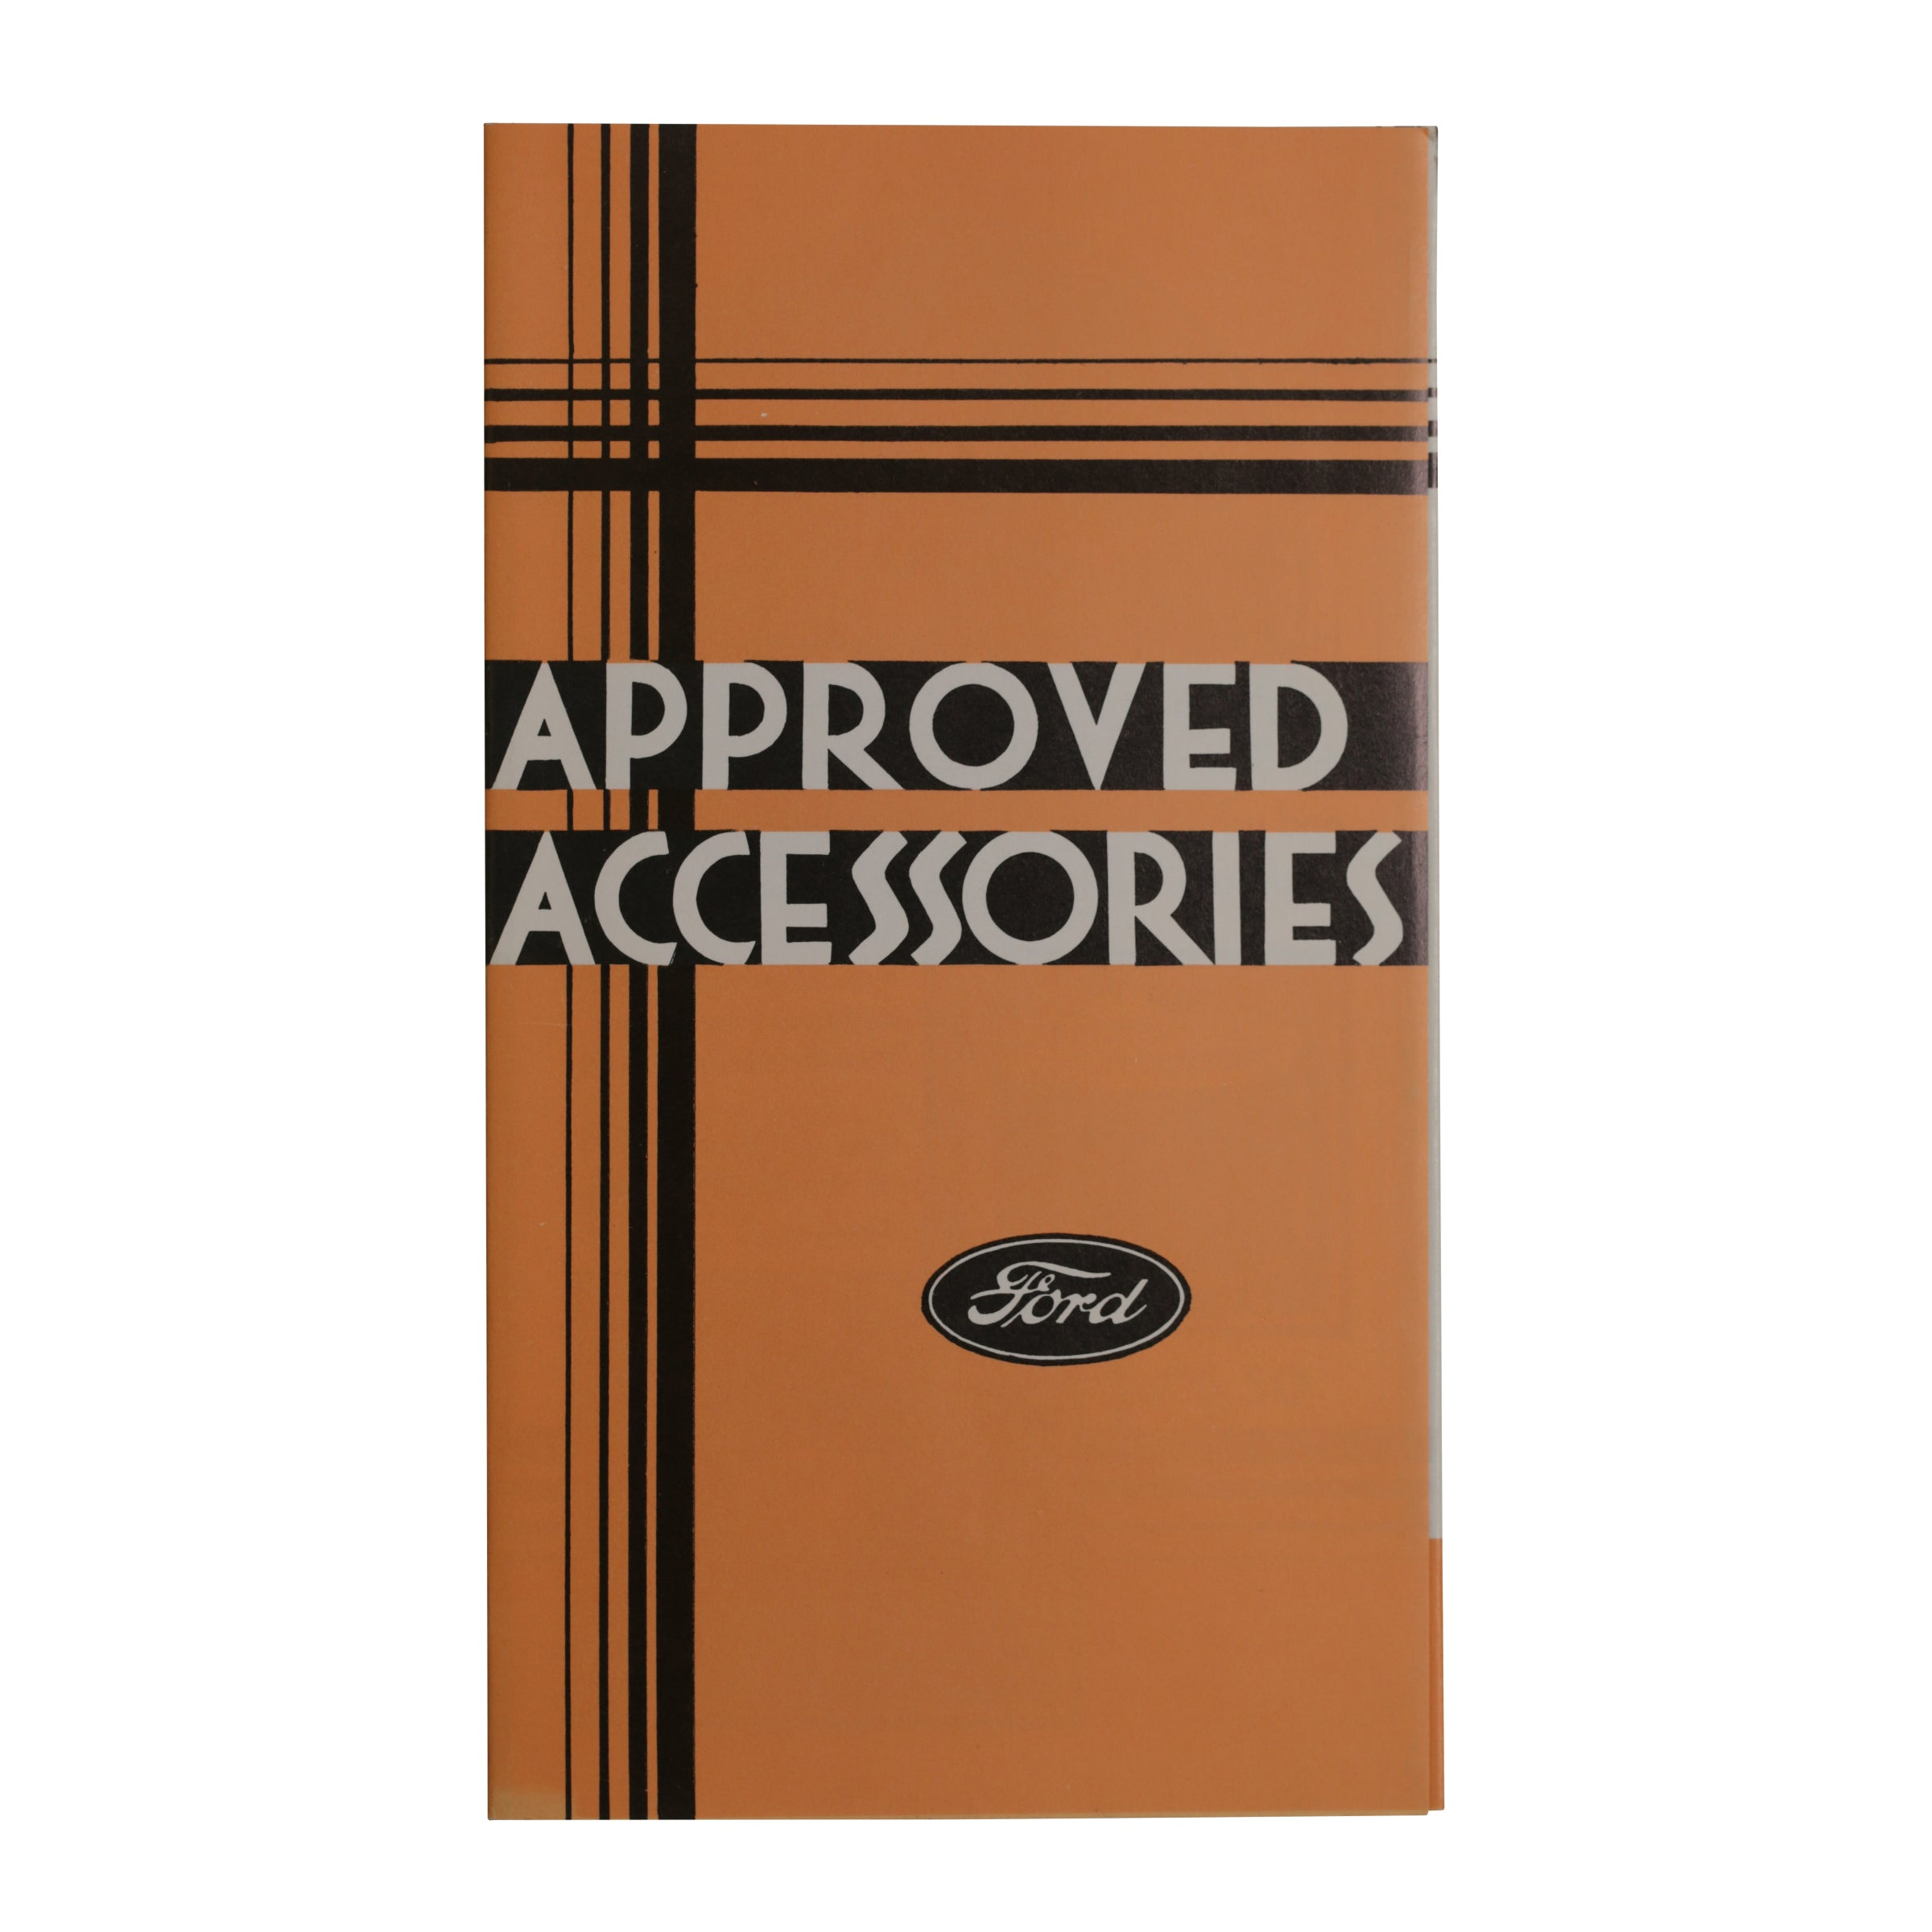 Accessories Brochure  • 1933 Ford